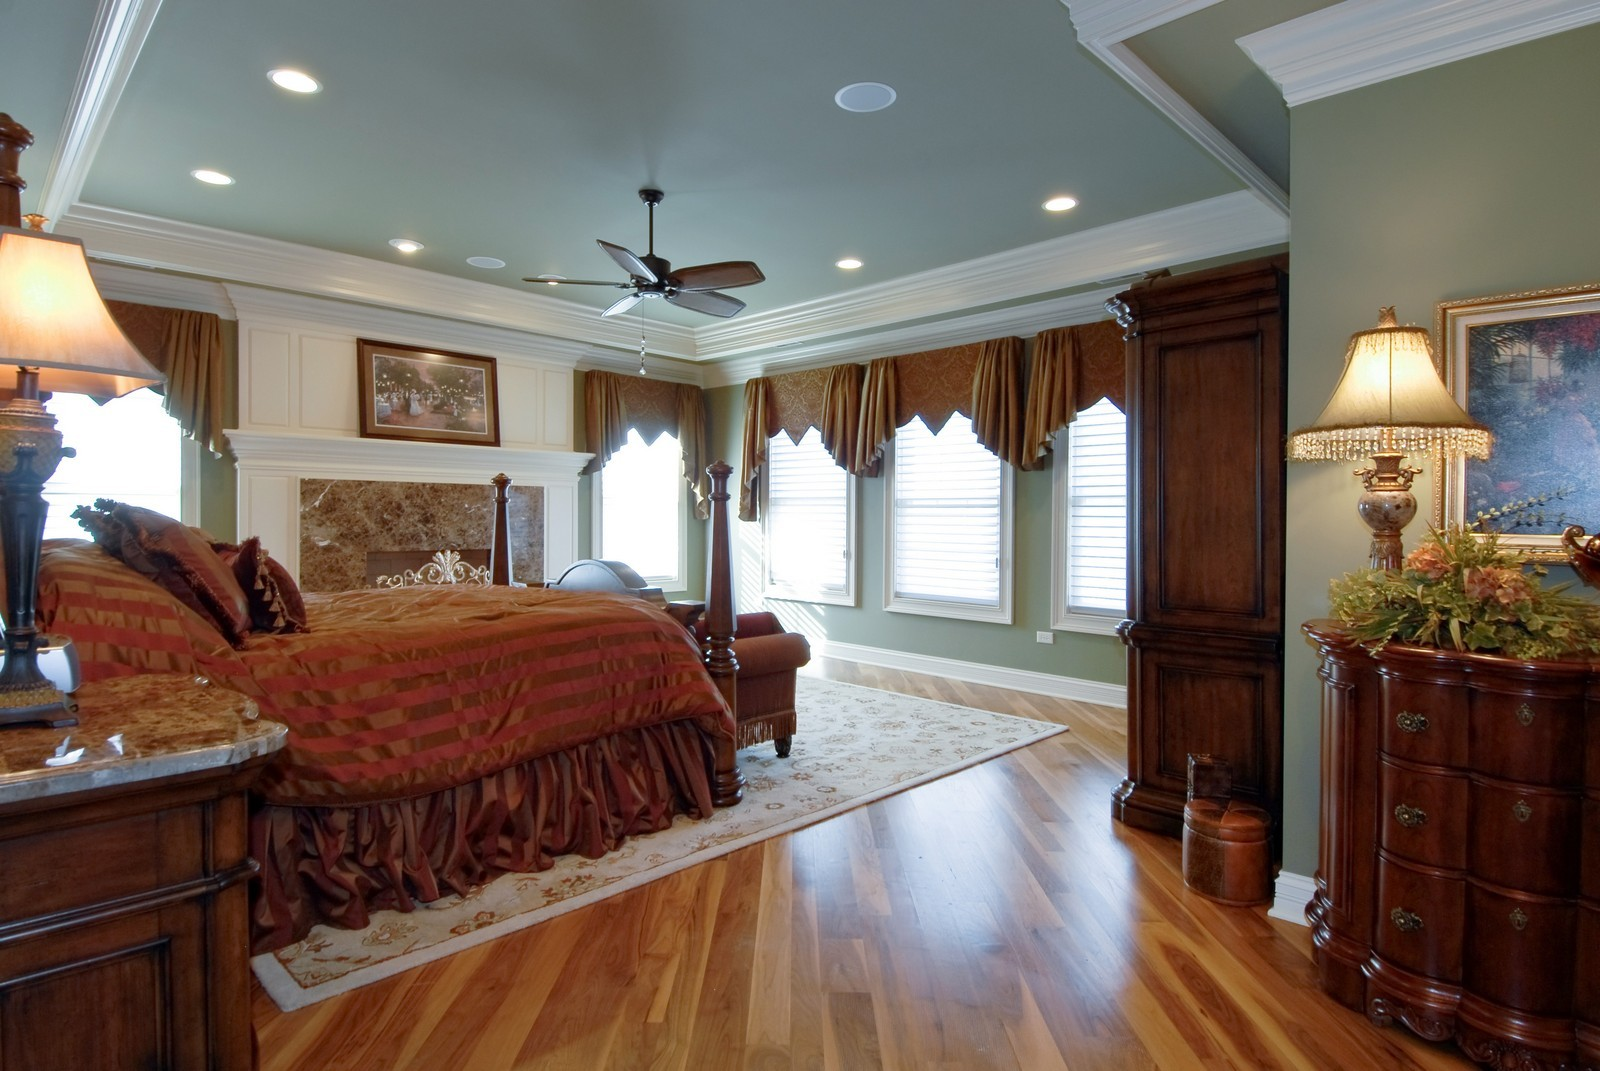 Real Estate Photography - 729 Wellner Dr, Naperville, IL, 60540 - Master Bedroom